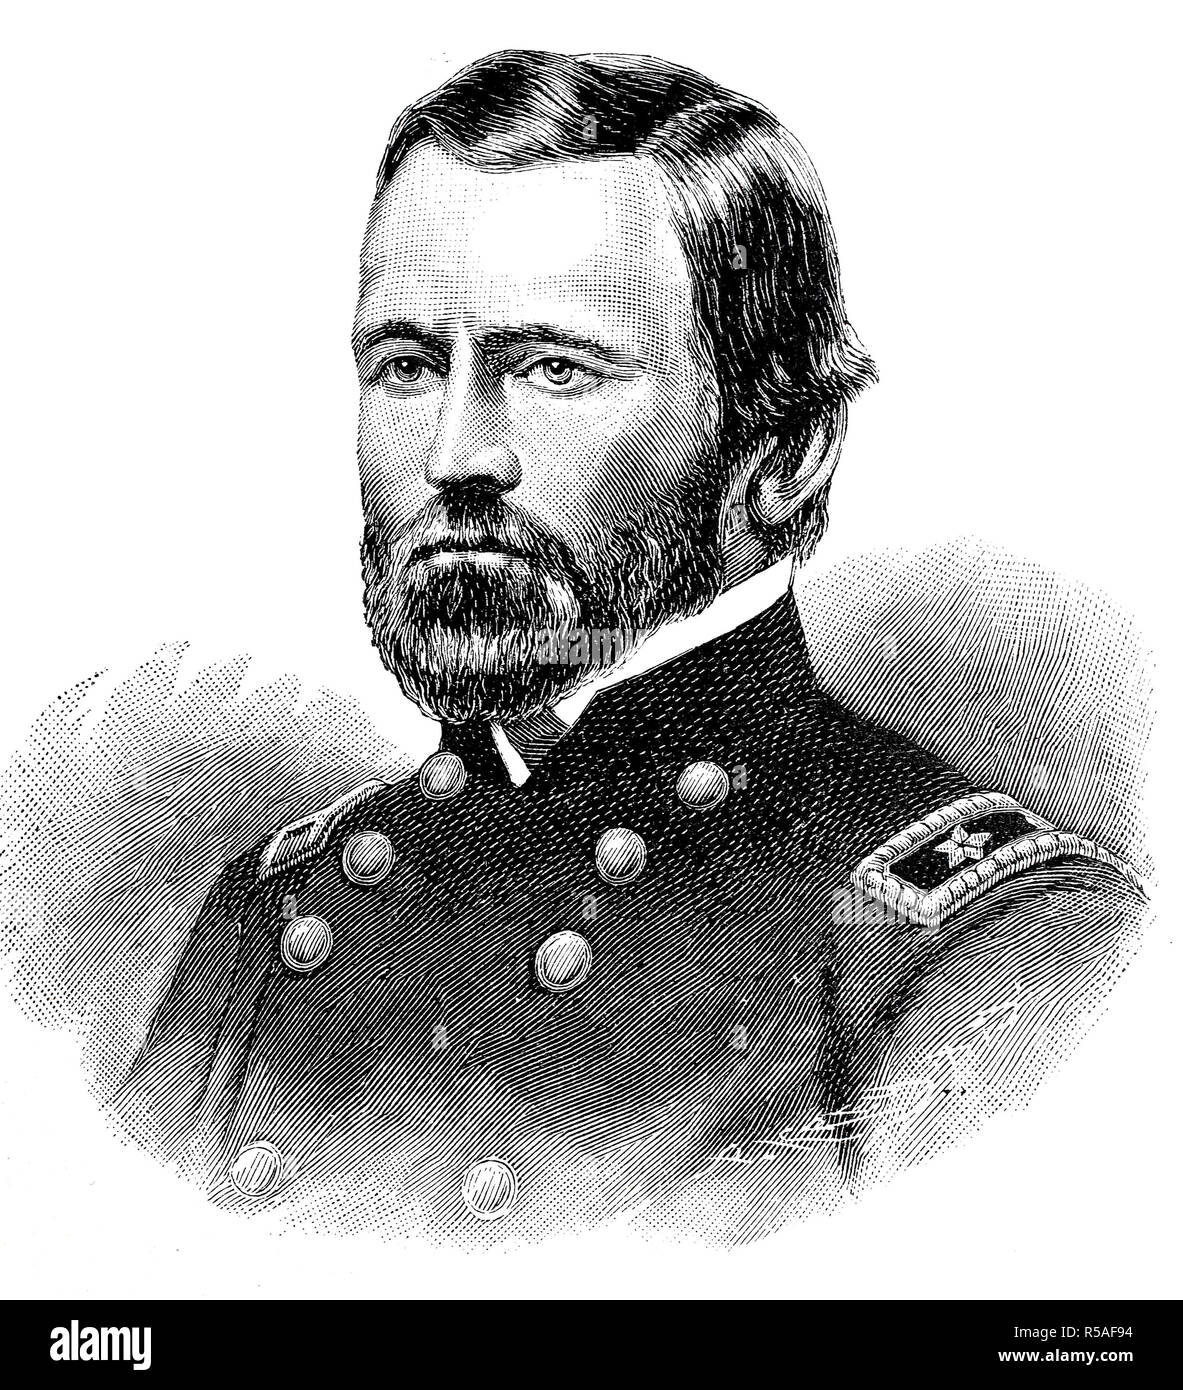 Ulysses S. Grant, April 27, 1822, July 23, 1885, General of the US Armywoodcut, America - Stock Image